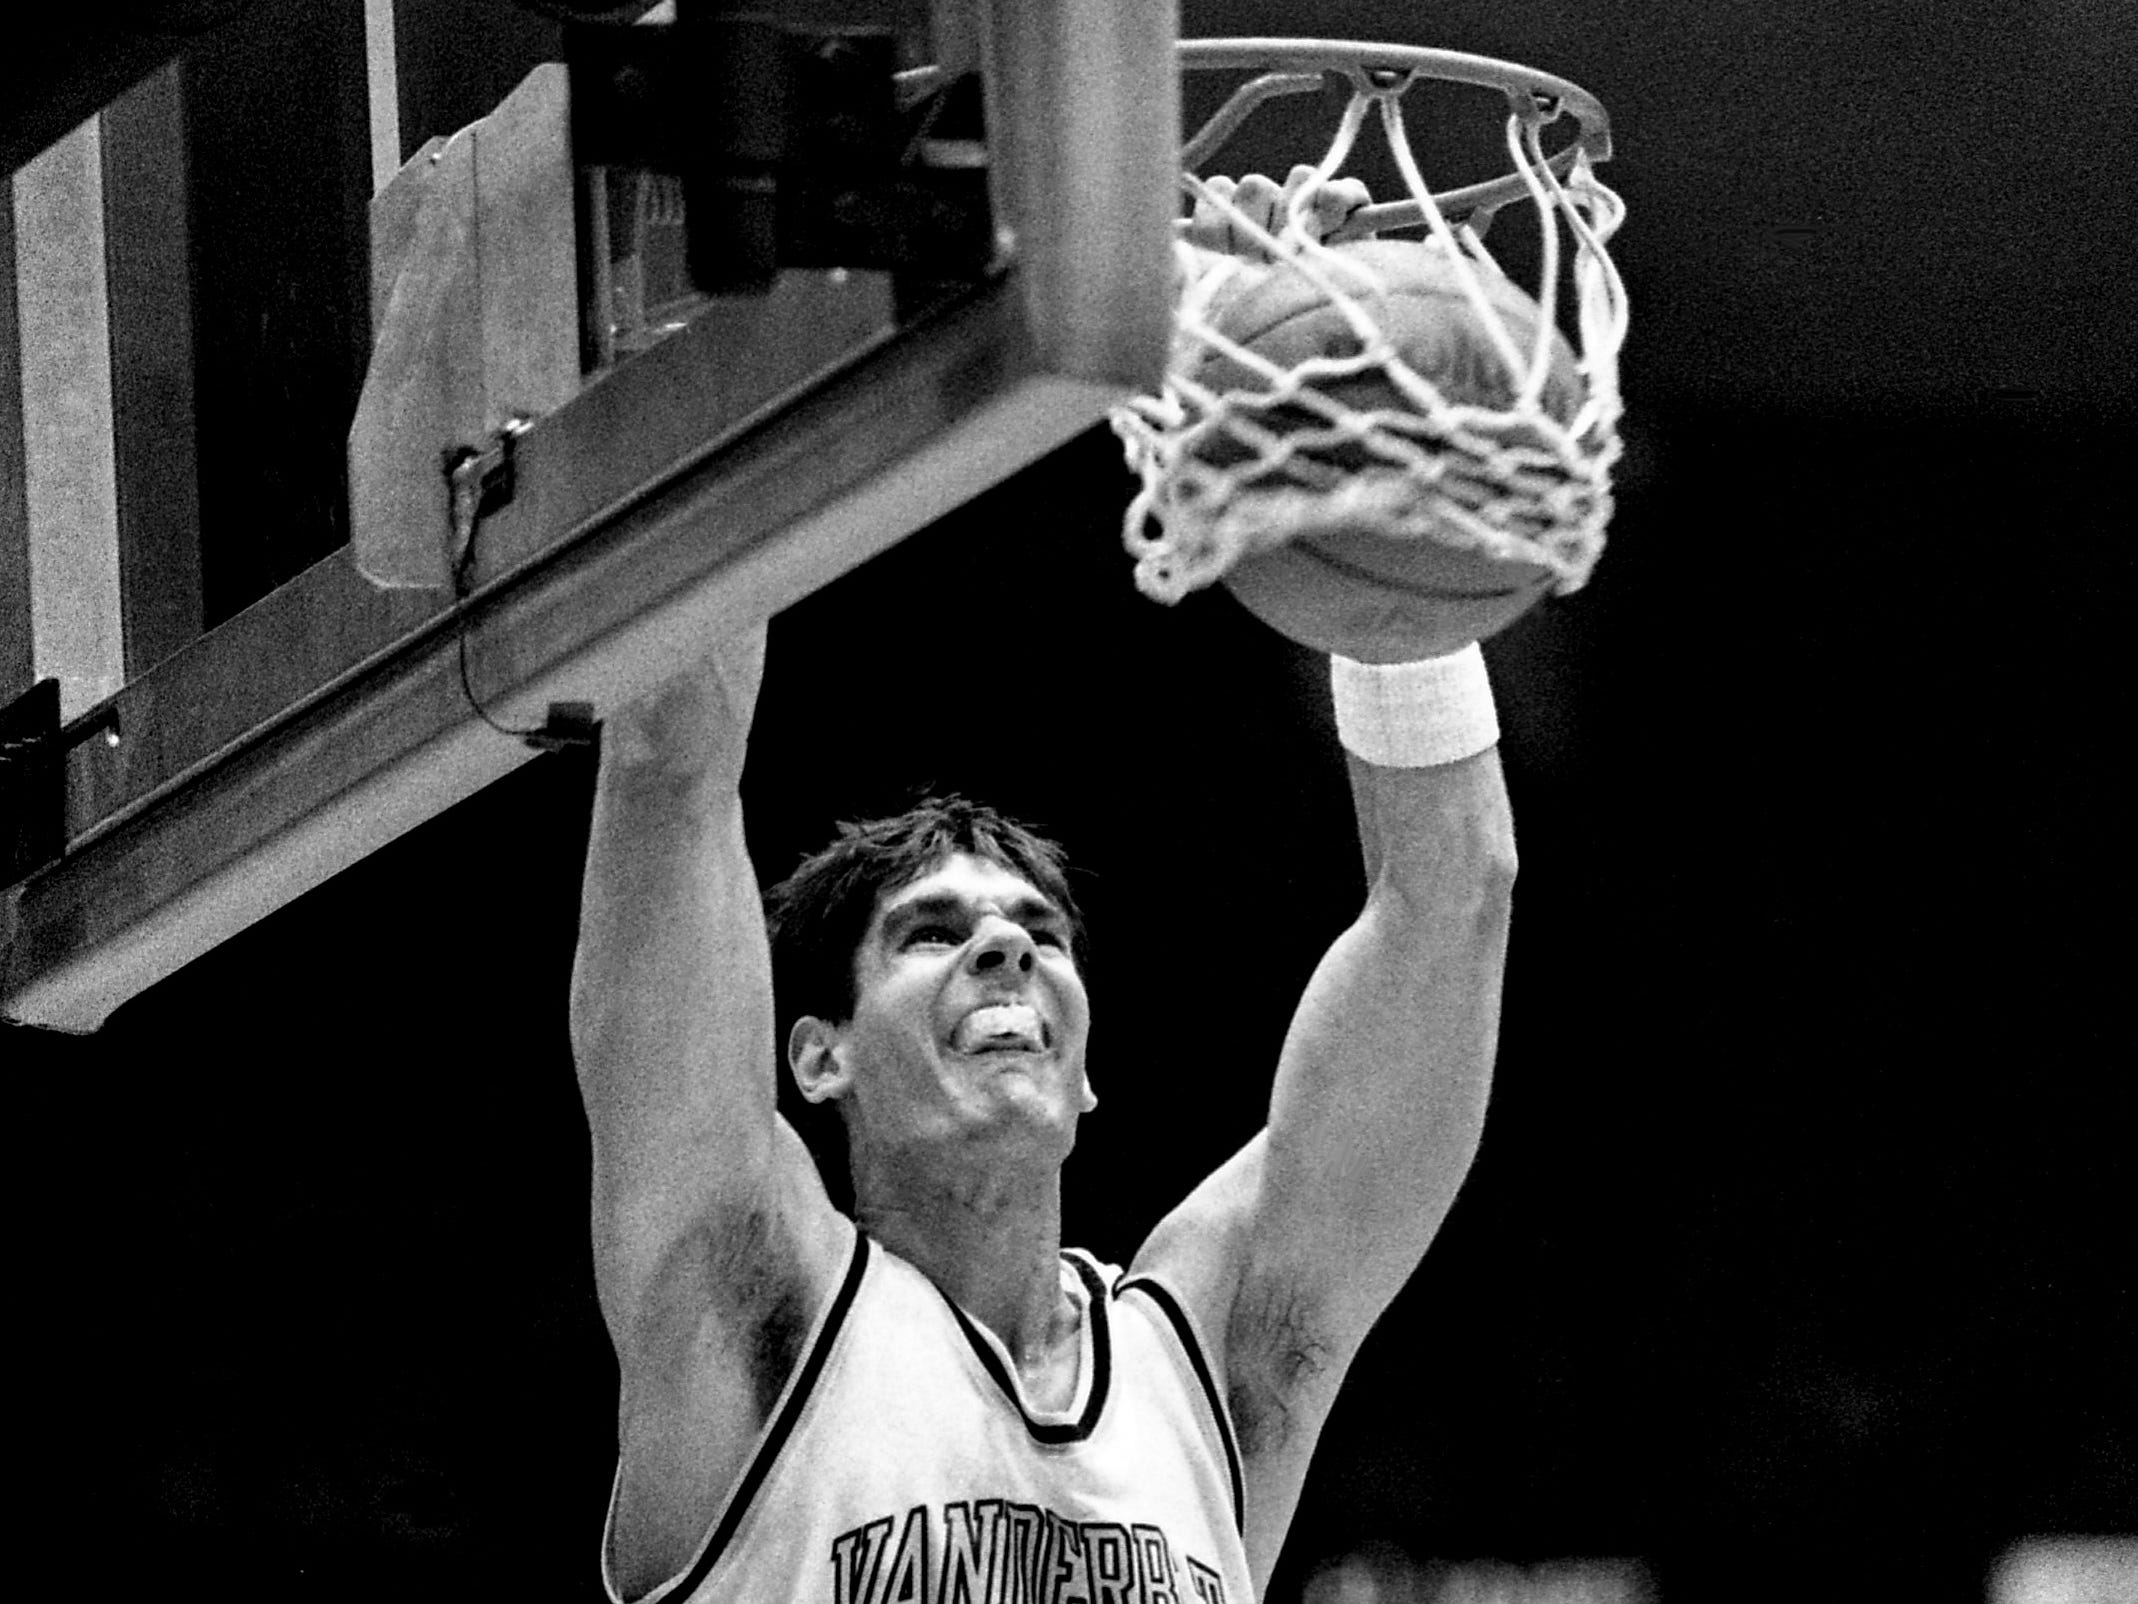 Vanderbilt senior center Frank Kornet dunks with such force he almost lost his mouthpiece. Kornet scored 18 points in the Commodores' 81-51 victory over Kentucky before 15,646 at Memorial Gym on Feb. 8, 1989.